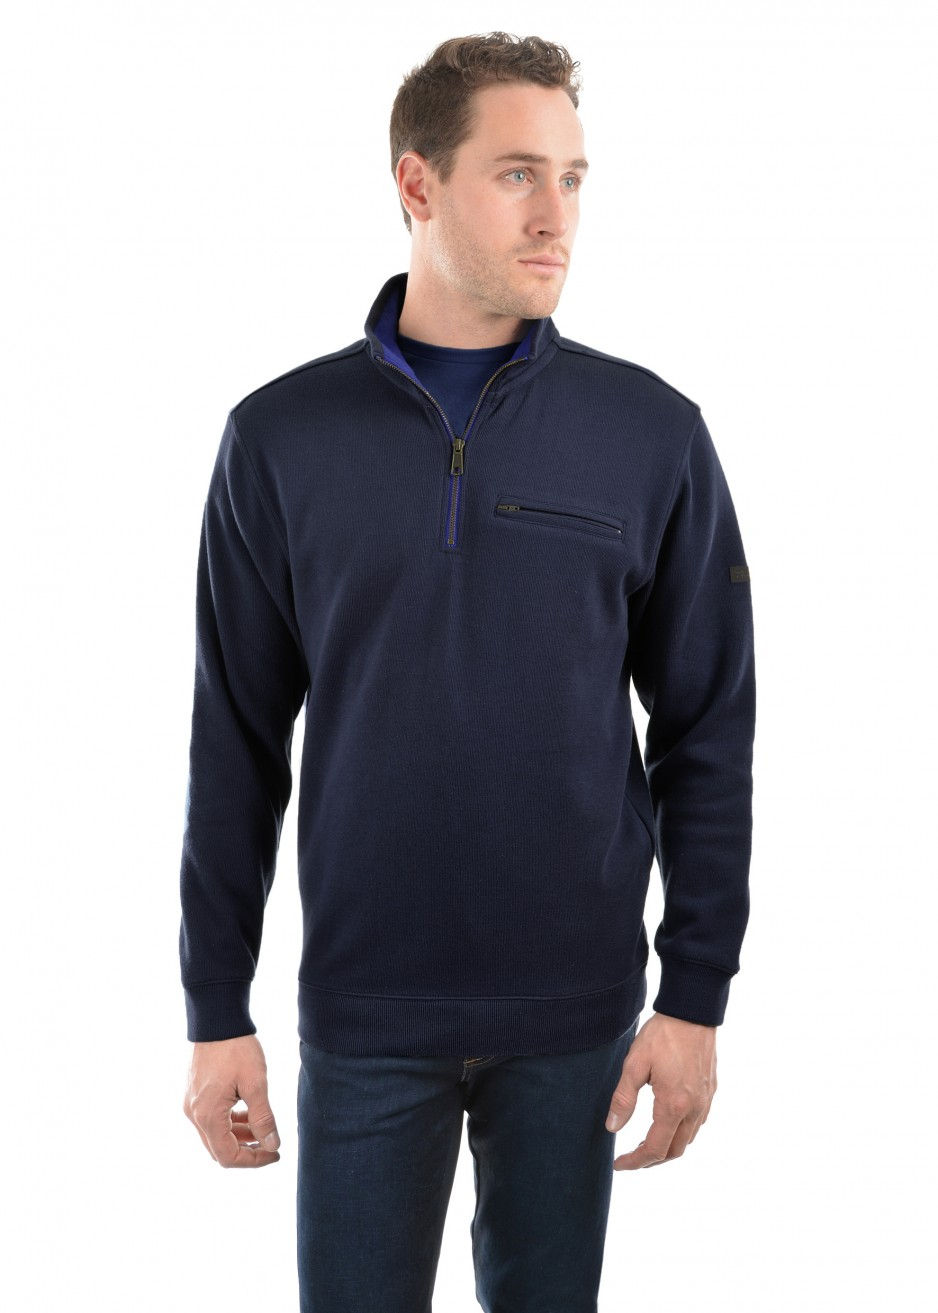 MENS MURRAY 1/4 ZIP NECK 1-POCKET L/S TOP